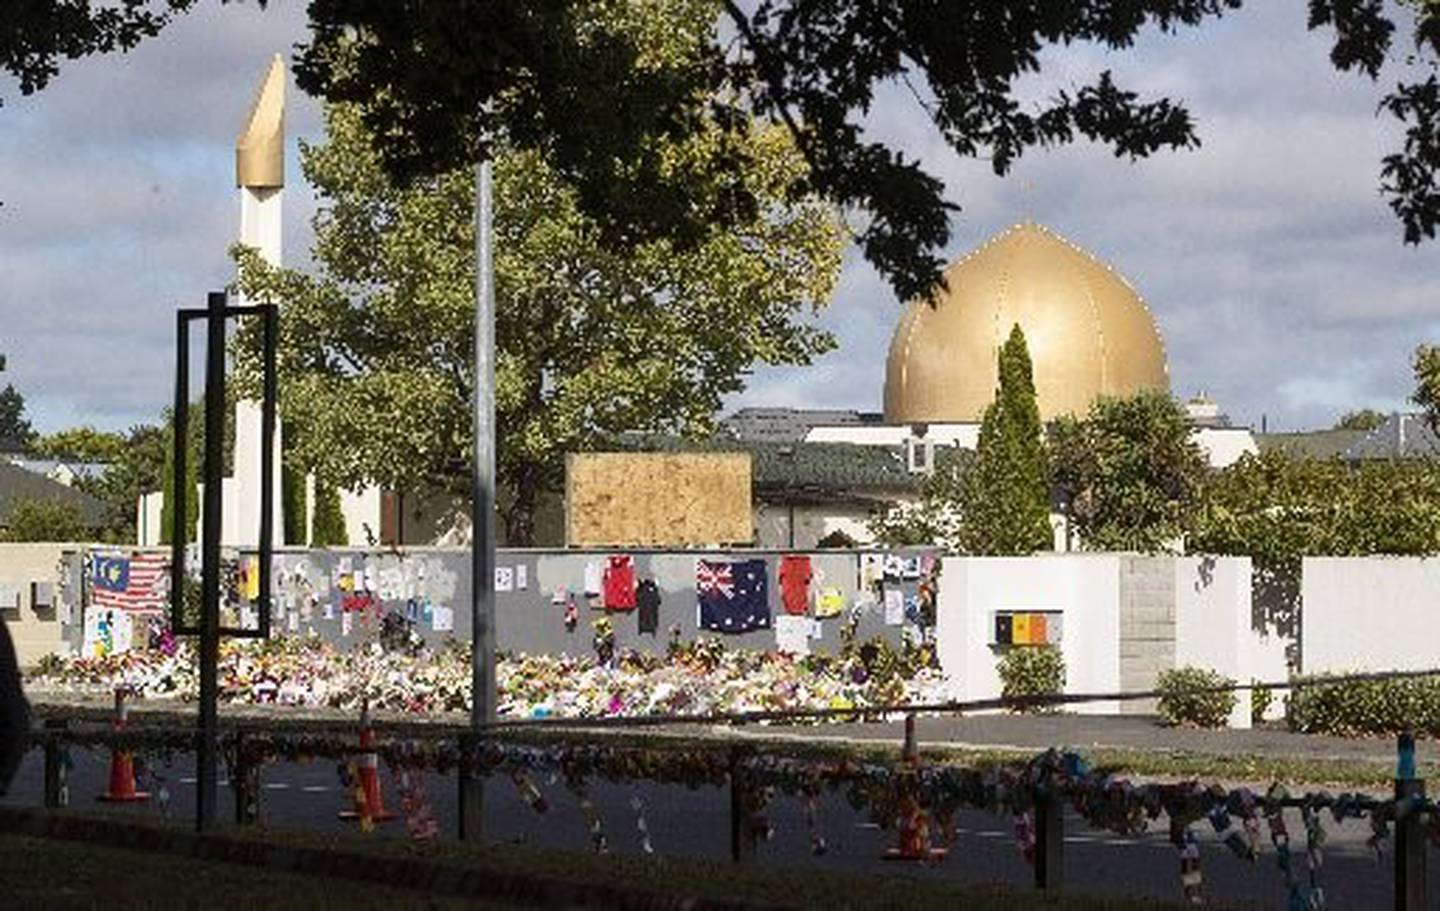 White-supremacist views: New Zealand mosque shooter to represent himself at sentencing